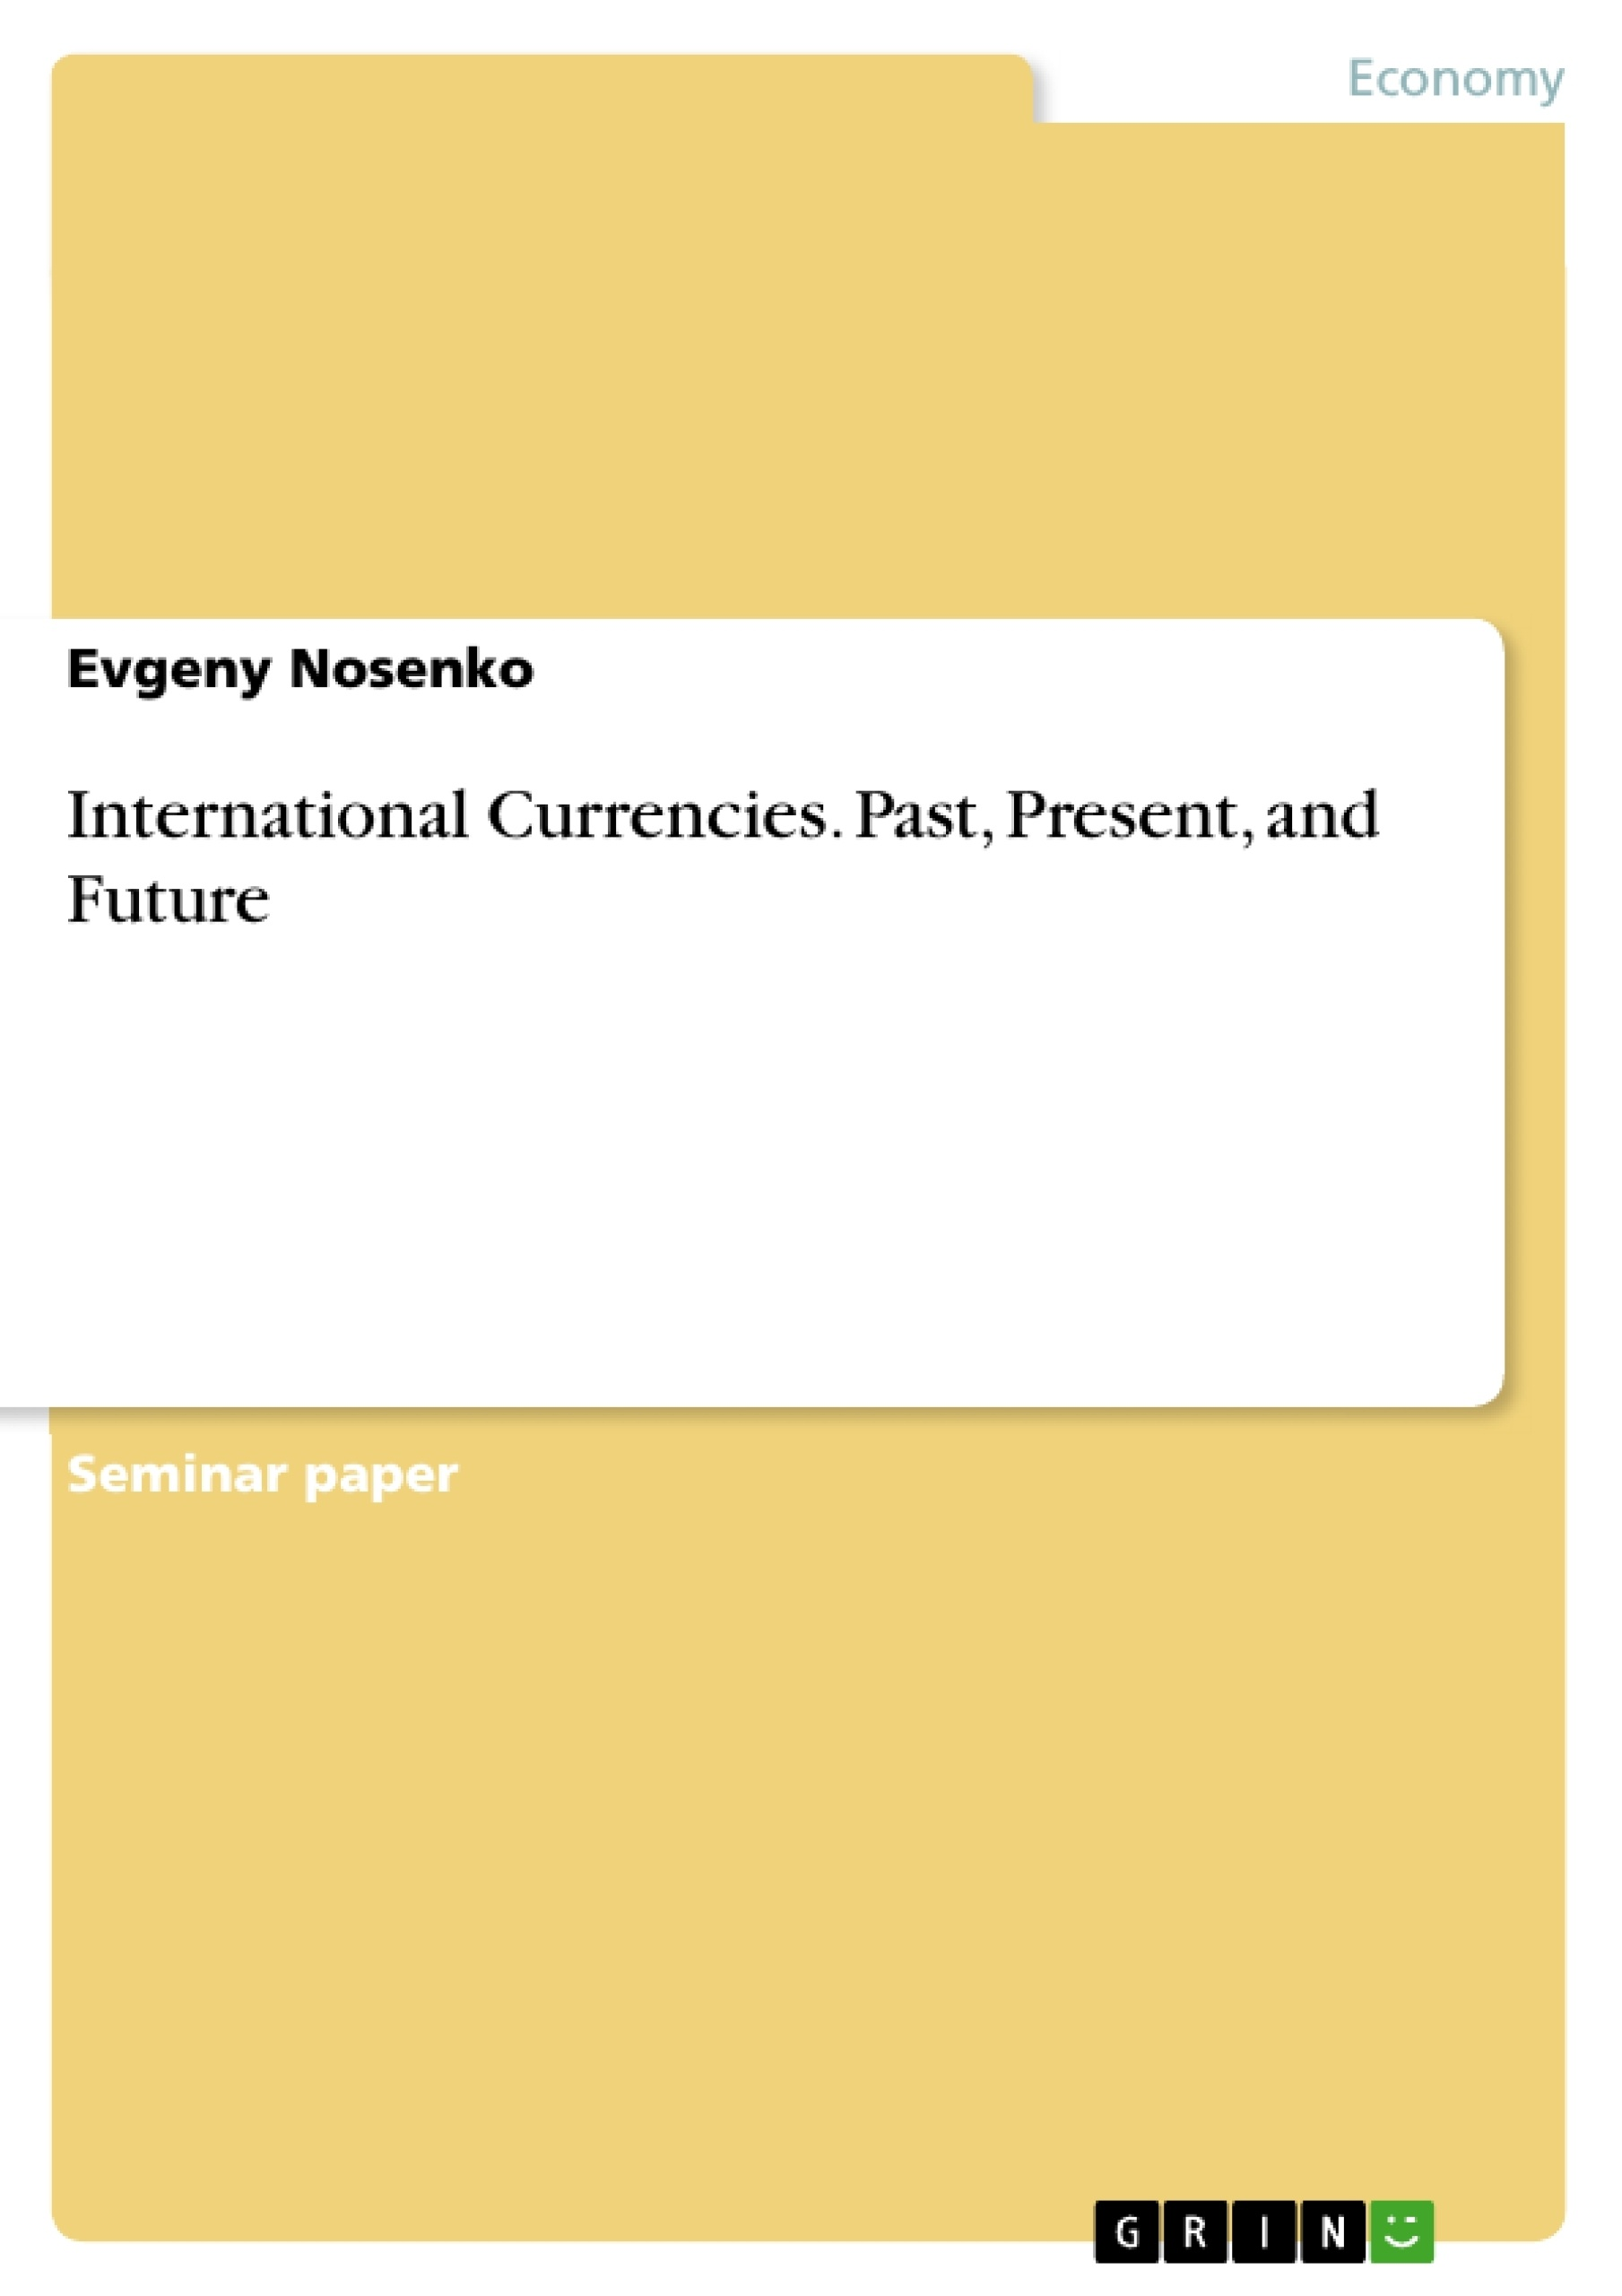 Title: International Currencies. Past, Present, and Future